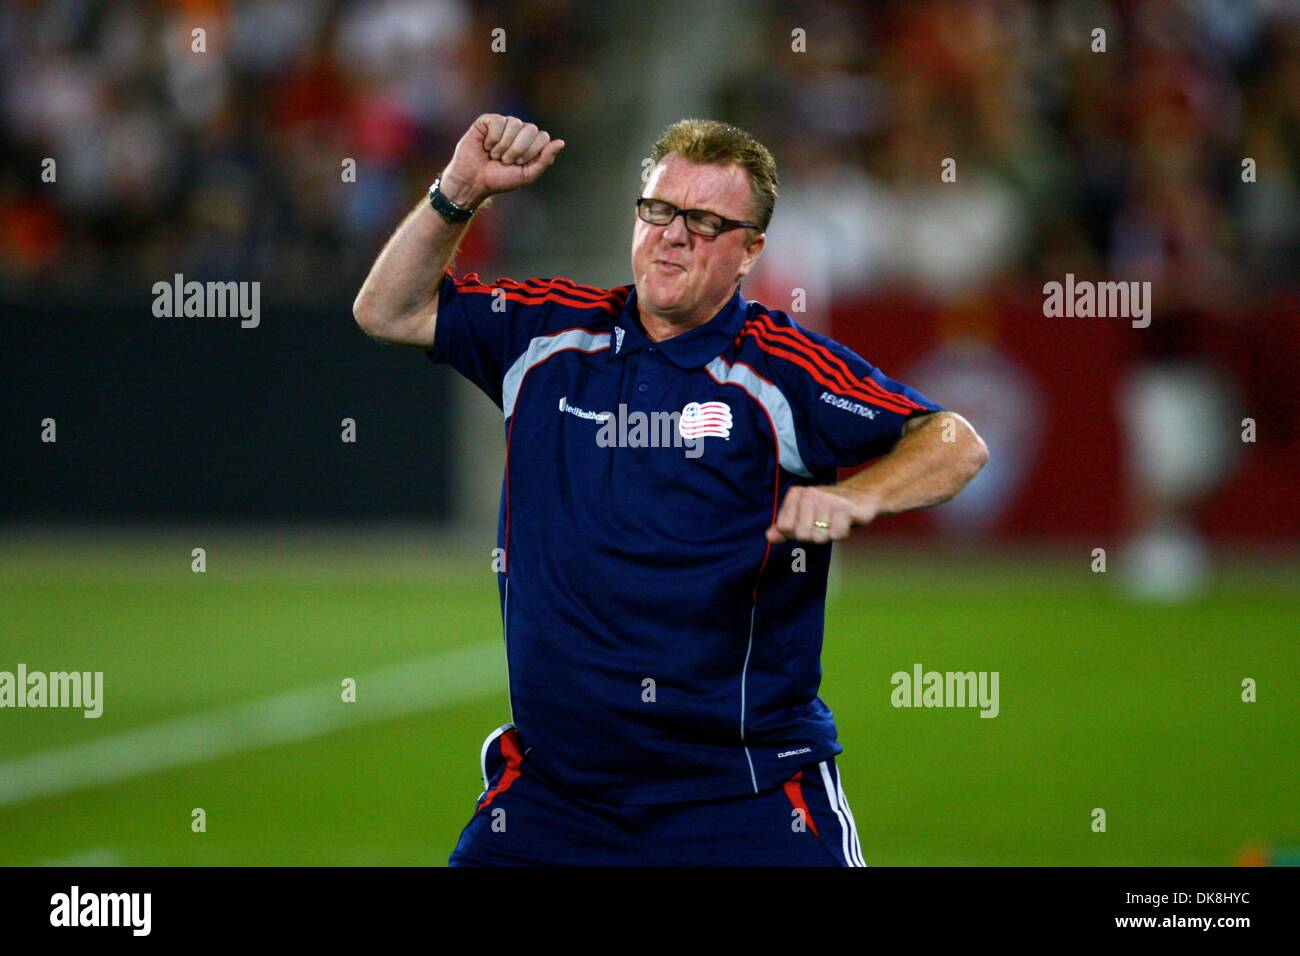 July 23, 2011 - Commerce City, Colorado, U.S - New England Revolution head coach Steve Nicol reacts dramatically in the second half.  The match ended in a 2-2 tie.  The Rapids hosted the Revolution at Dick's Sporting Goods Park in Commerce City, CO. (Credit Image: © Isaiah Downing/Southcreek Global/ZUMApress.com) - Stock Image